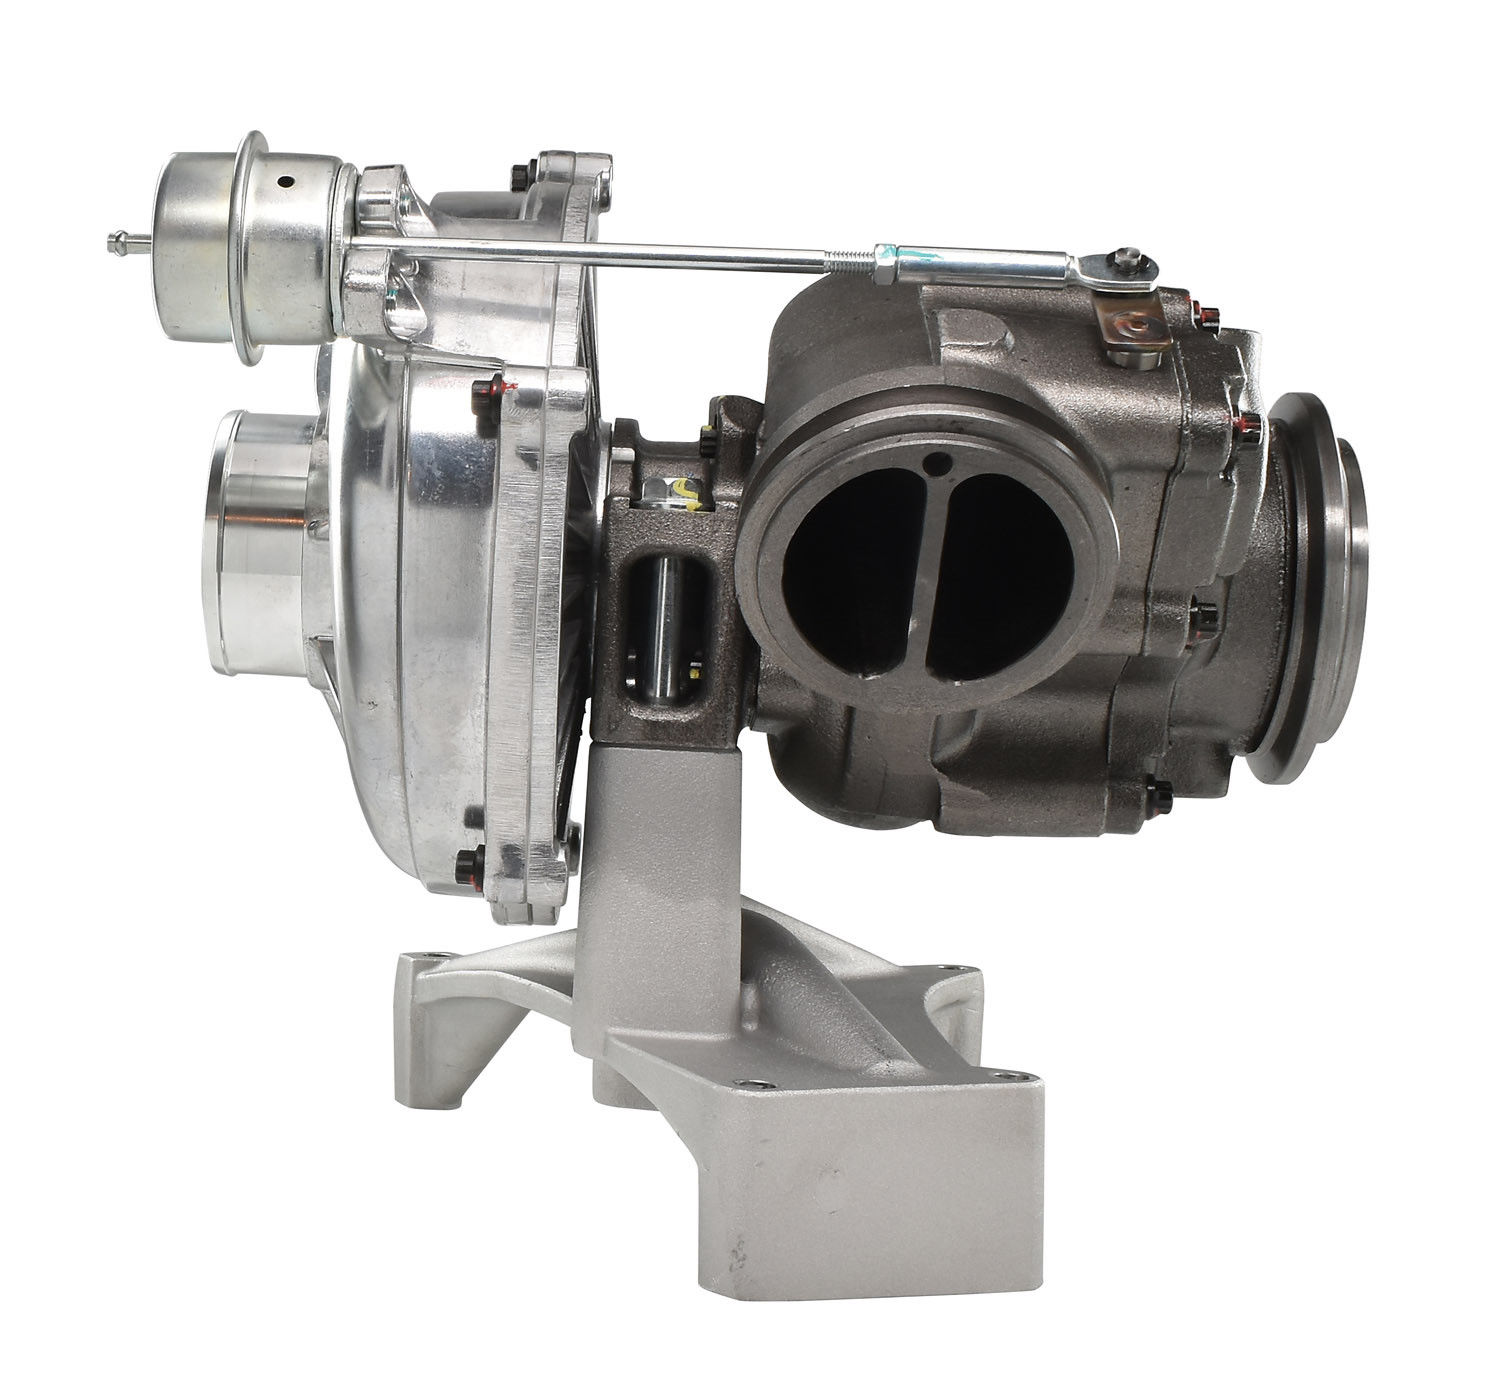 2 3 Turbo Performance Parts: 7.3L GTP38 High Performance Turbocharger 5+5 Billet Wheel